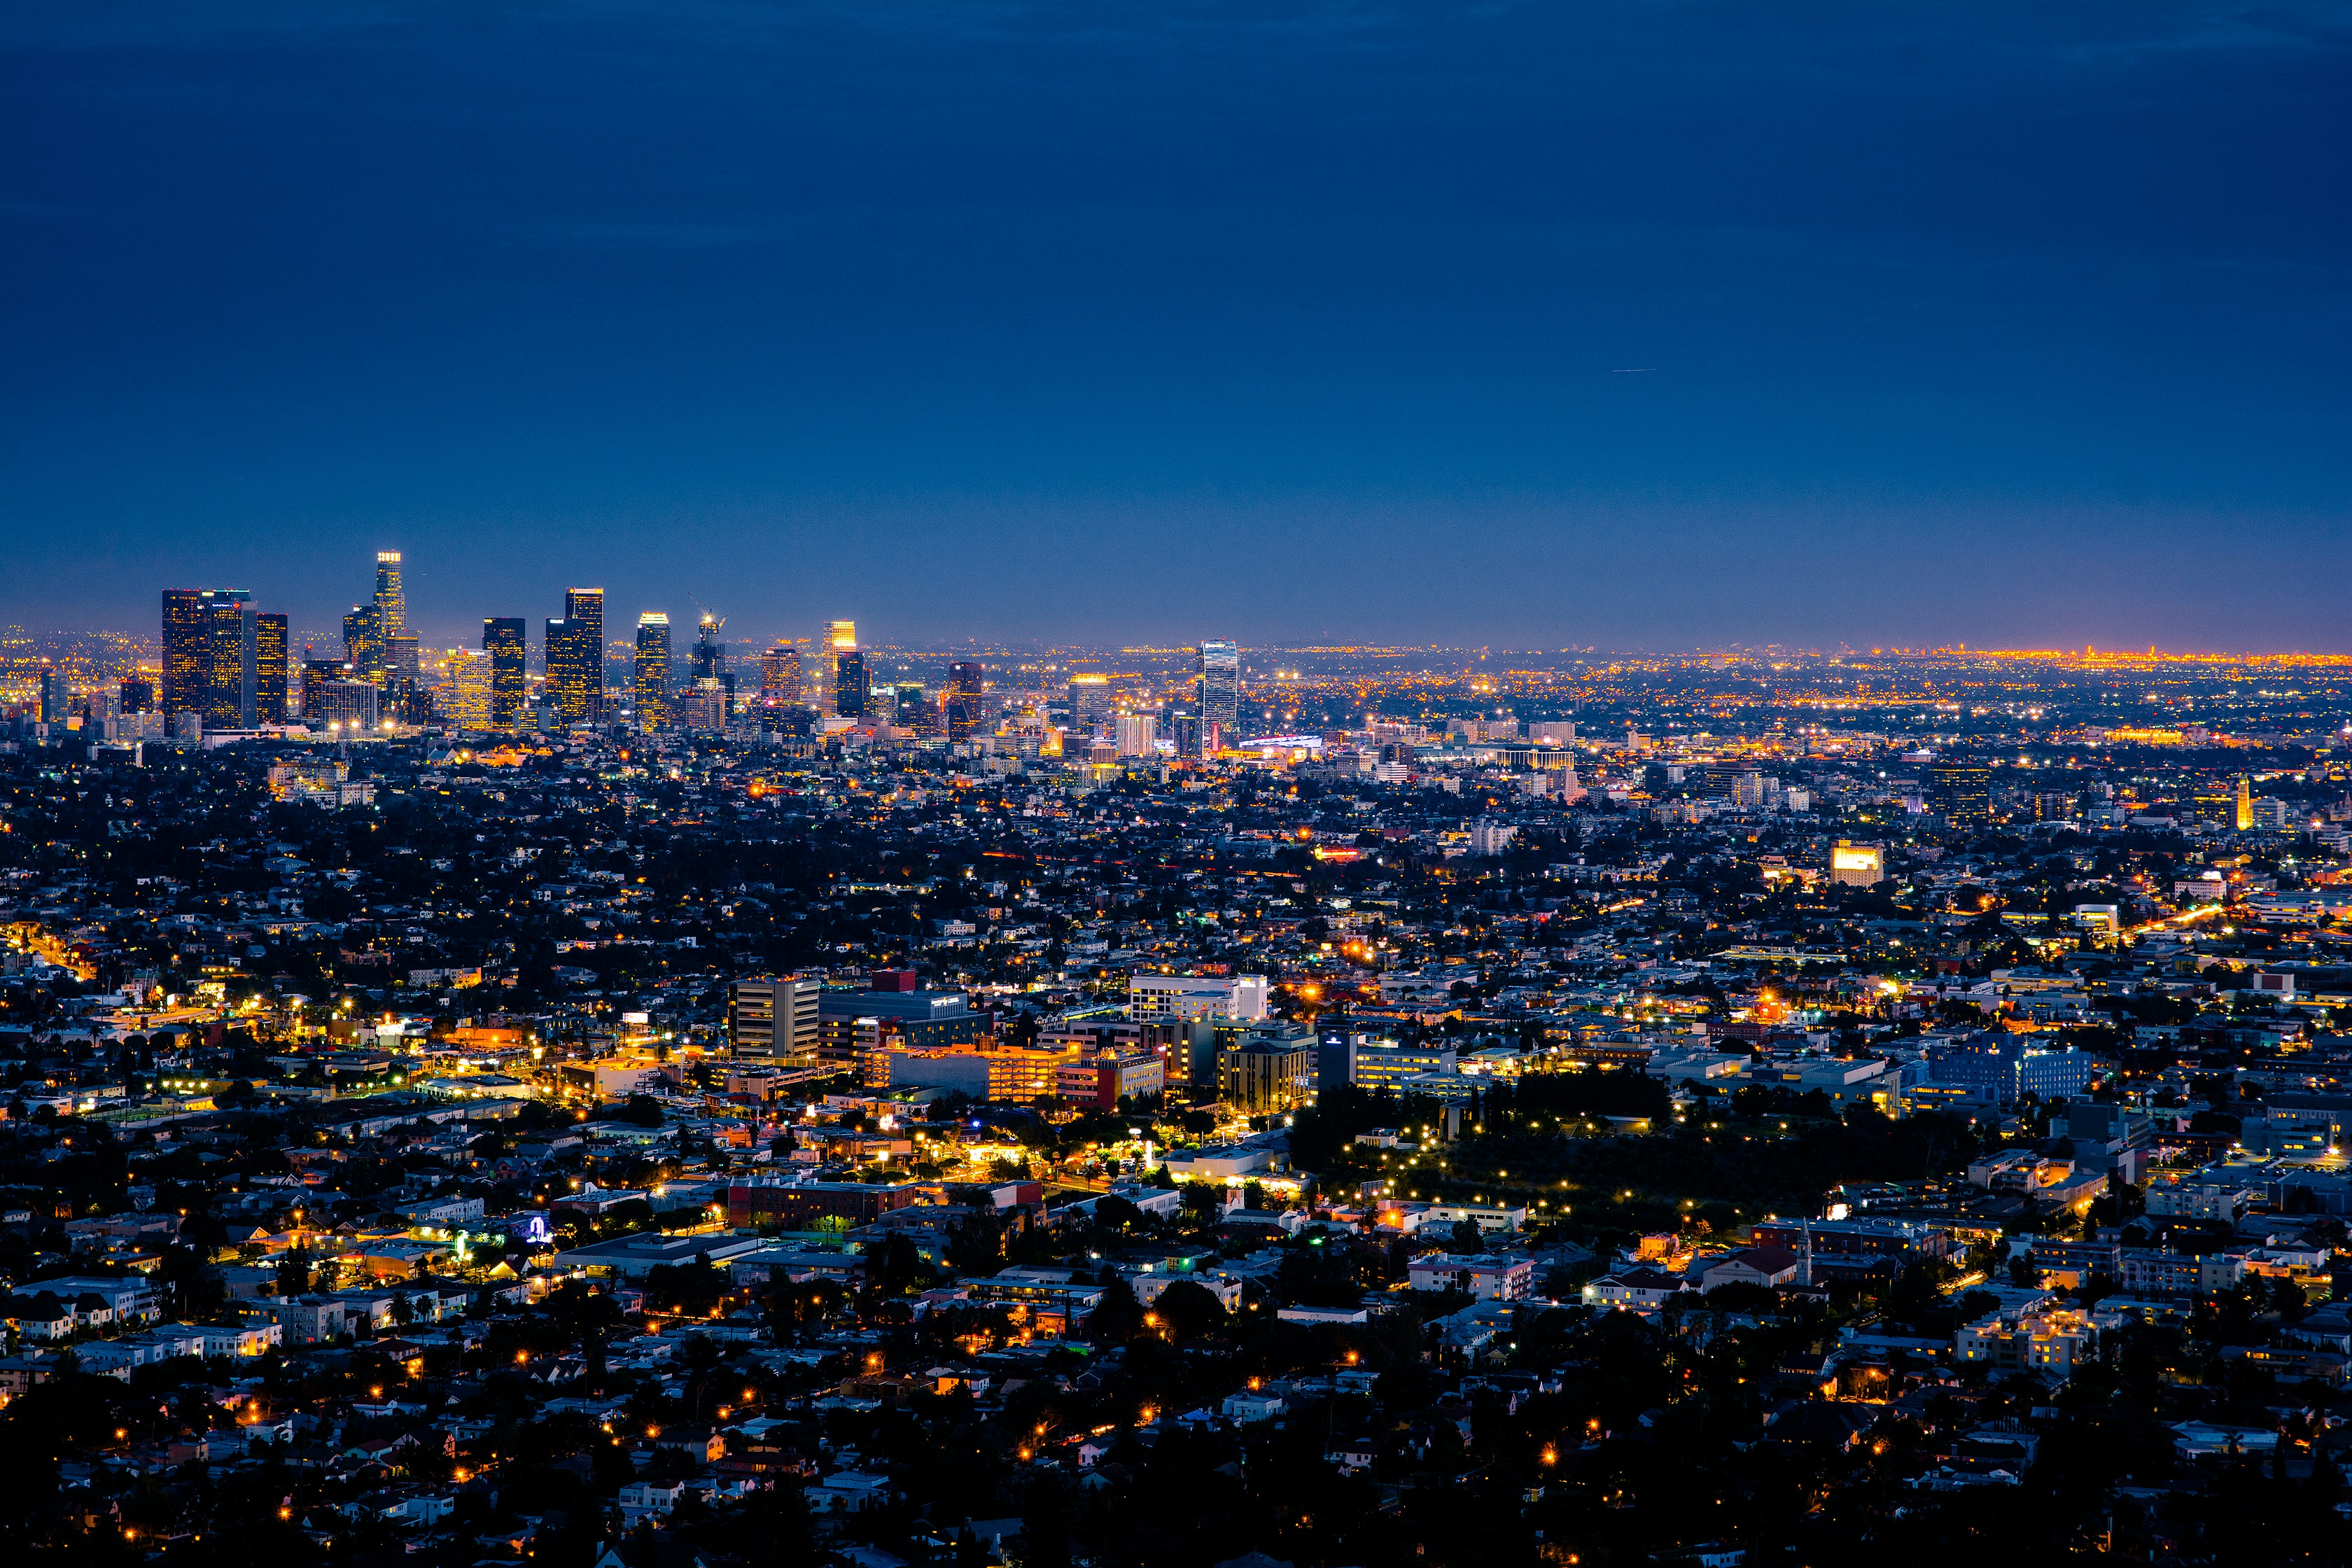 A drone shot overlooking Los Angeles from the Griffith Observatory